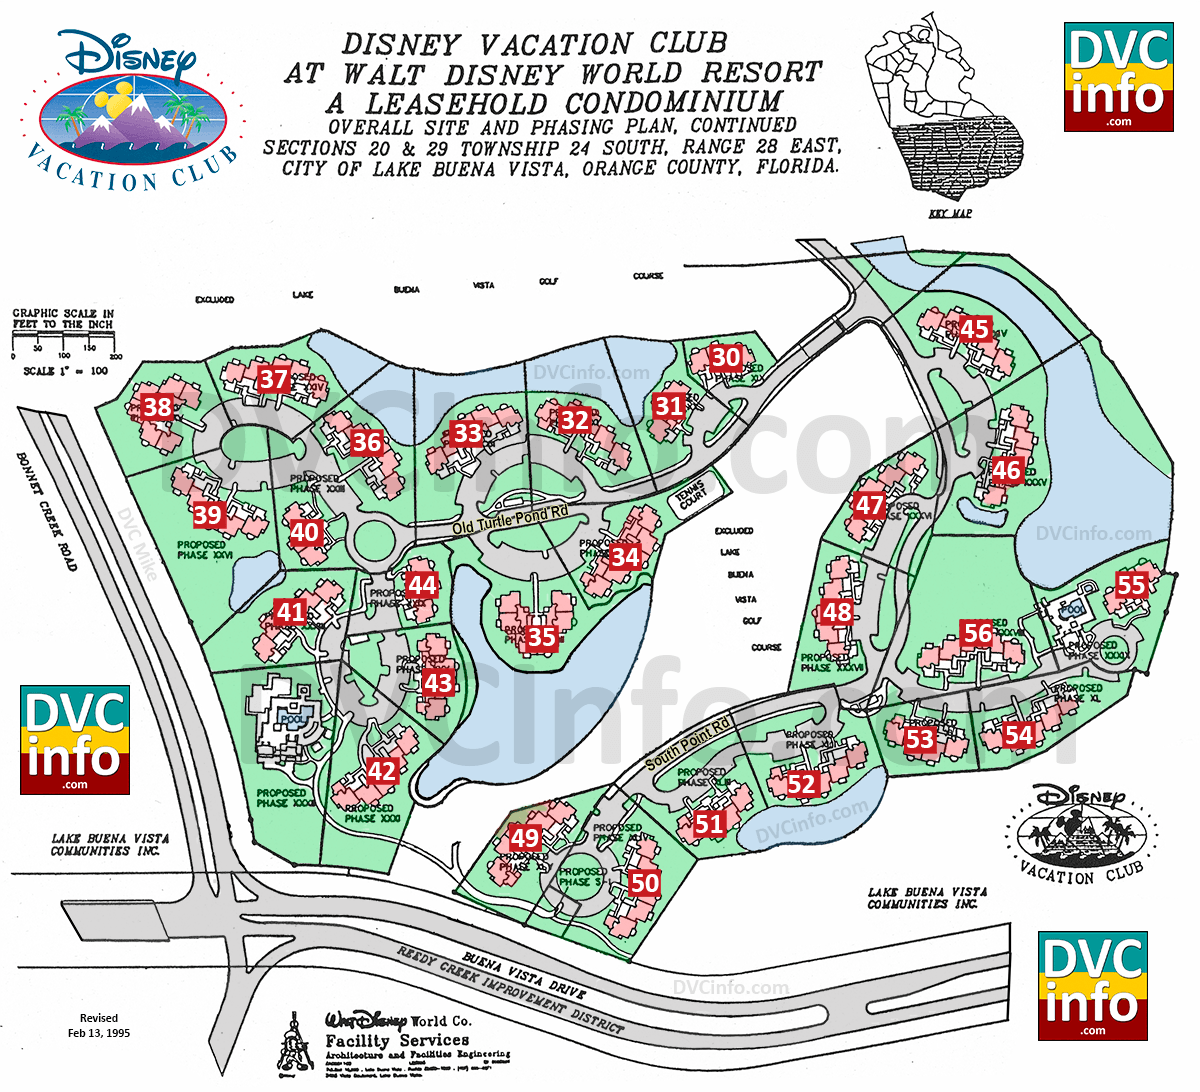 disney vacation club site plan subsequent phases click for larger image